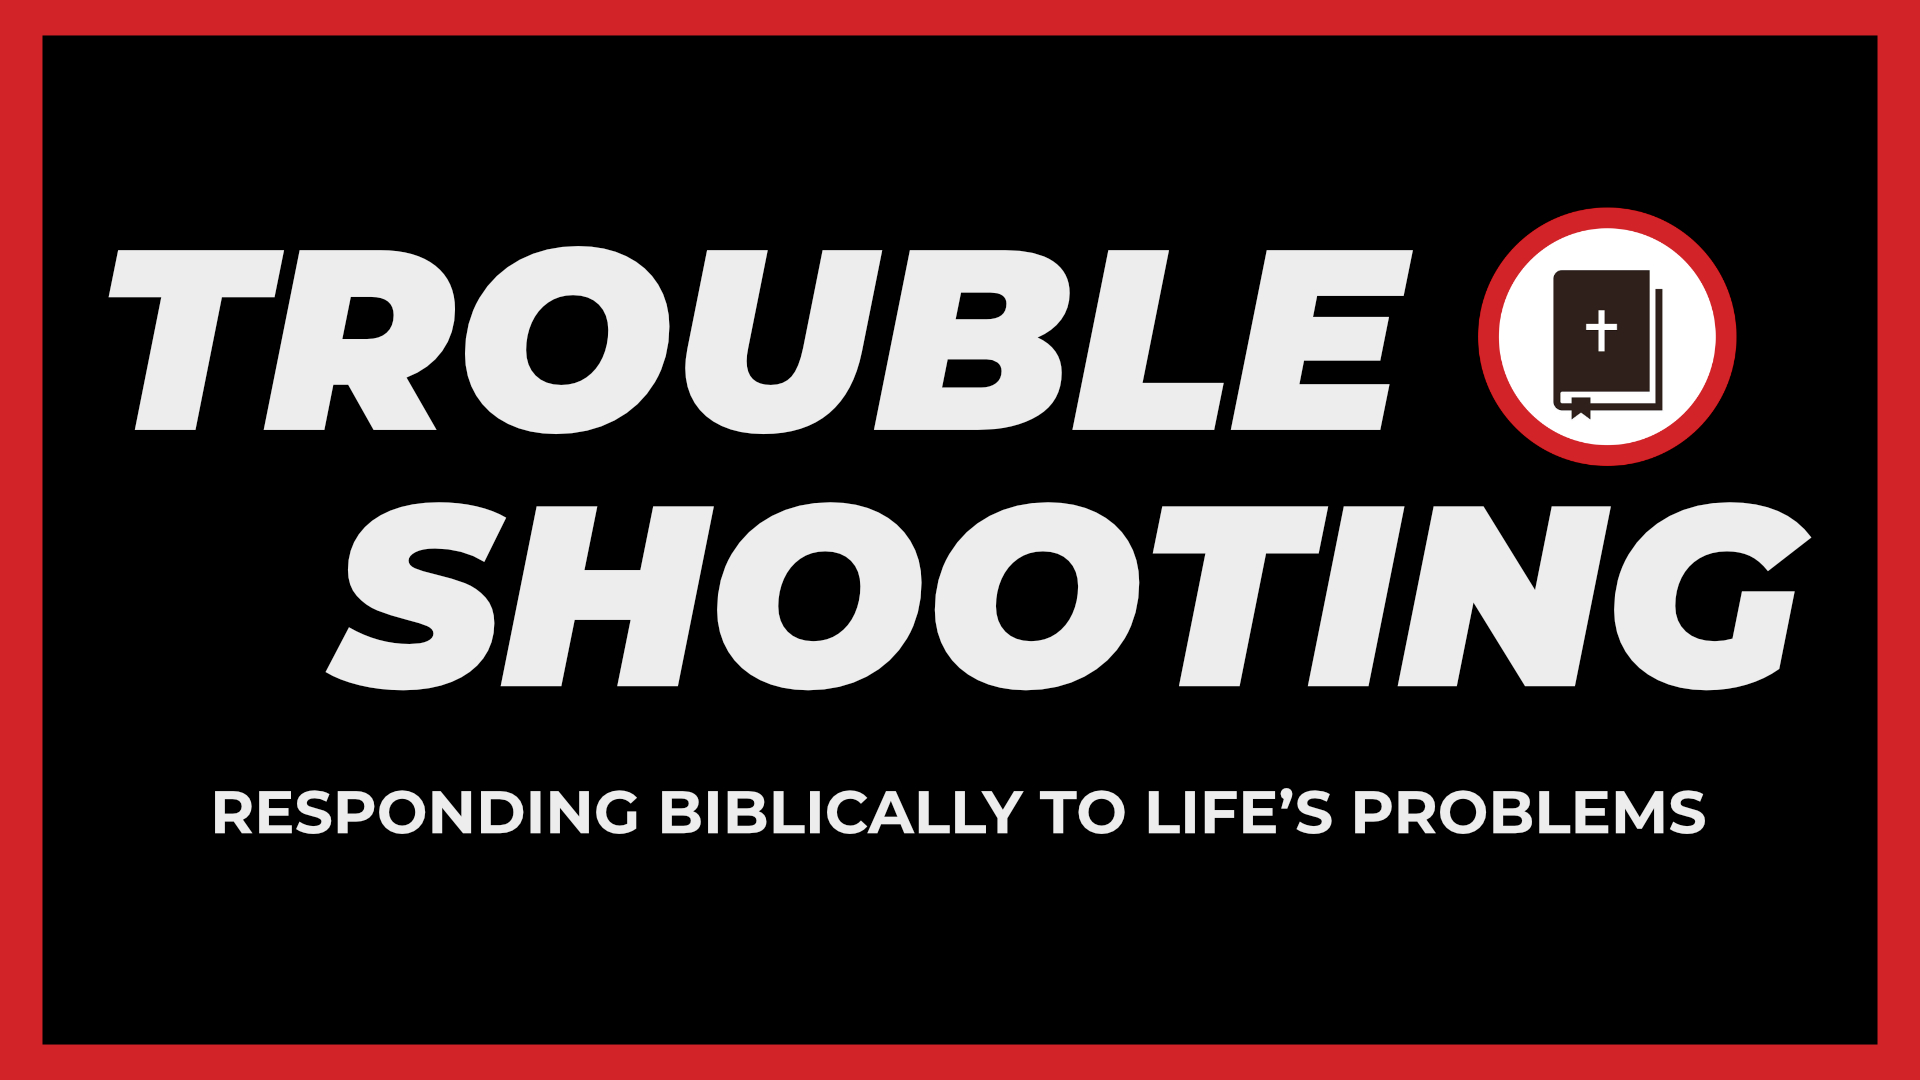 Troubleshooting •Current Series